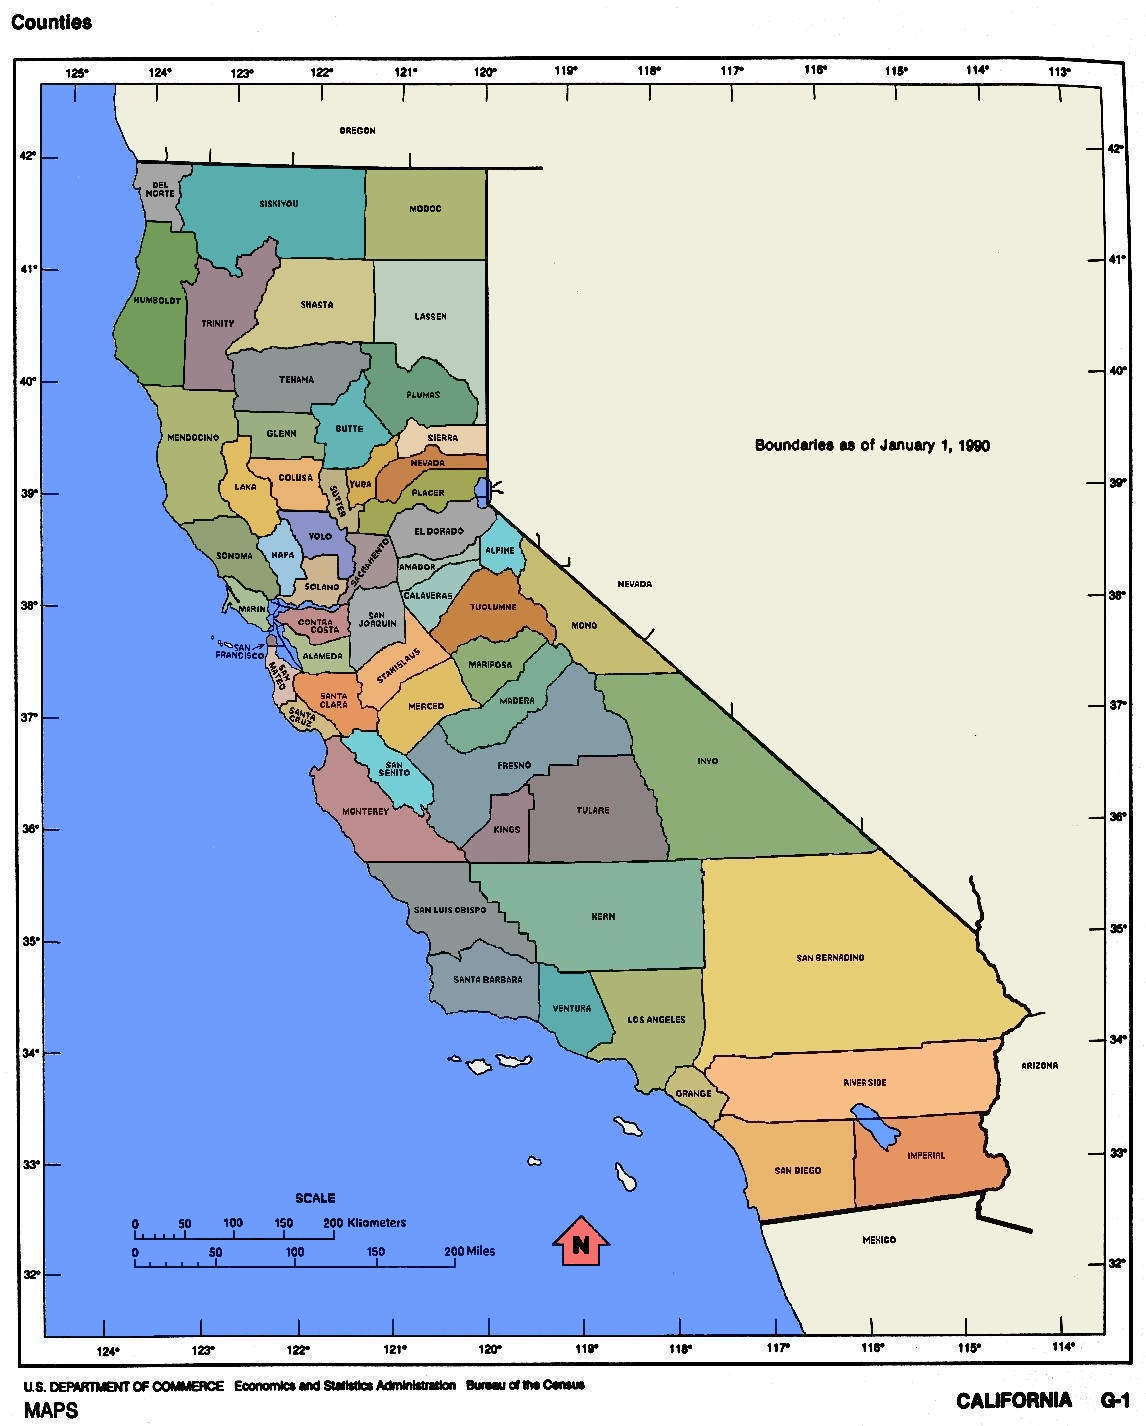 File:California Map.jpg - Wikimedia Commons on north edwards, pismo beach, california state hunting zone map, all of california cities map, sacramento california map, bolivar city map, antelope valley, san francisco bay area highway map, california school for the deaf map, edwards, california, santa barbara map, california mountains on map, lake isabella, los angeles map, indian wells, kern county, california, twentynine palms, cal state channel islands campus map, kern county map, southern california map, burbank map, arroyo grande, california national parks map, cal city map, california city municipal airport, california zip code map, red rock canyon state park map, grover beach, dana point map, west coast california cities map, california indian tribes native american regions map,